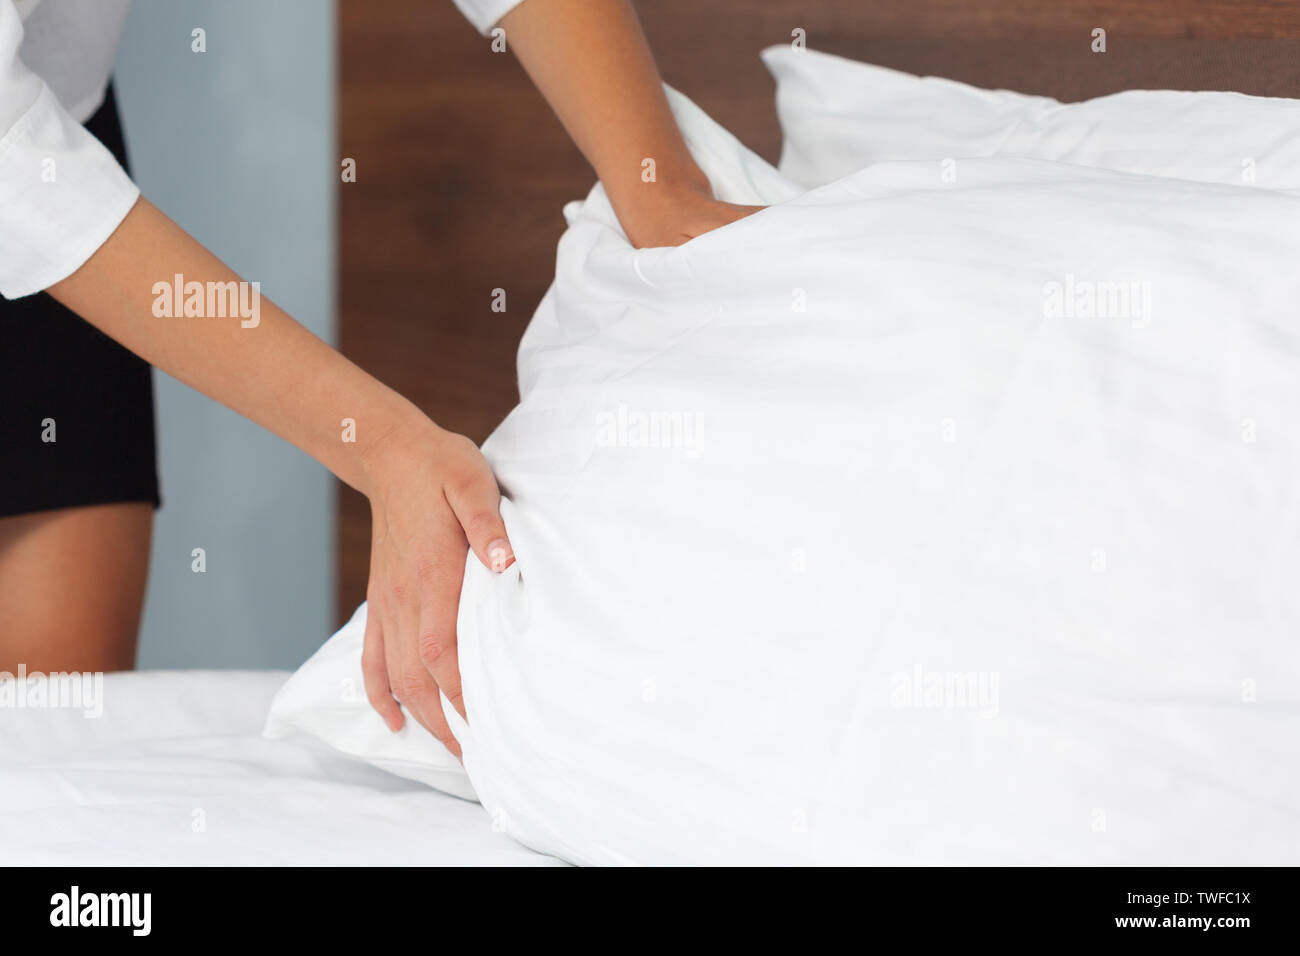 Young maid making bed in hotel room - Stock Image